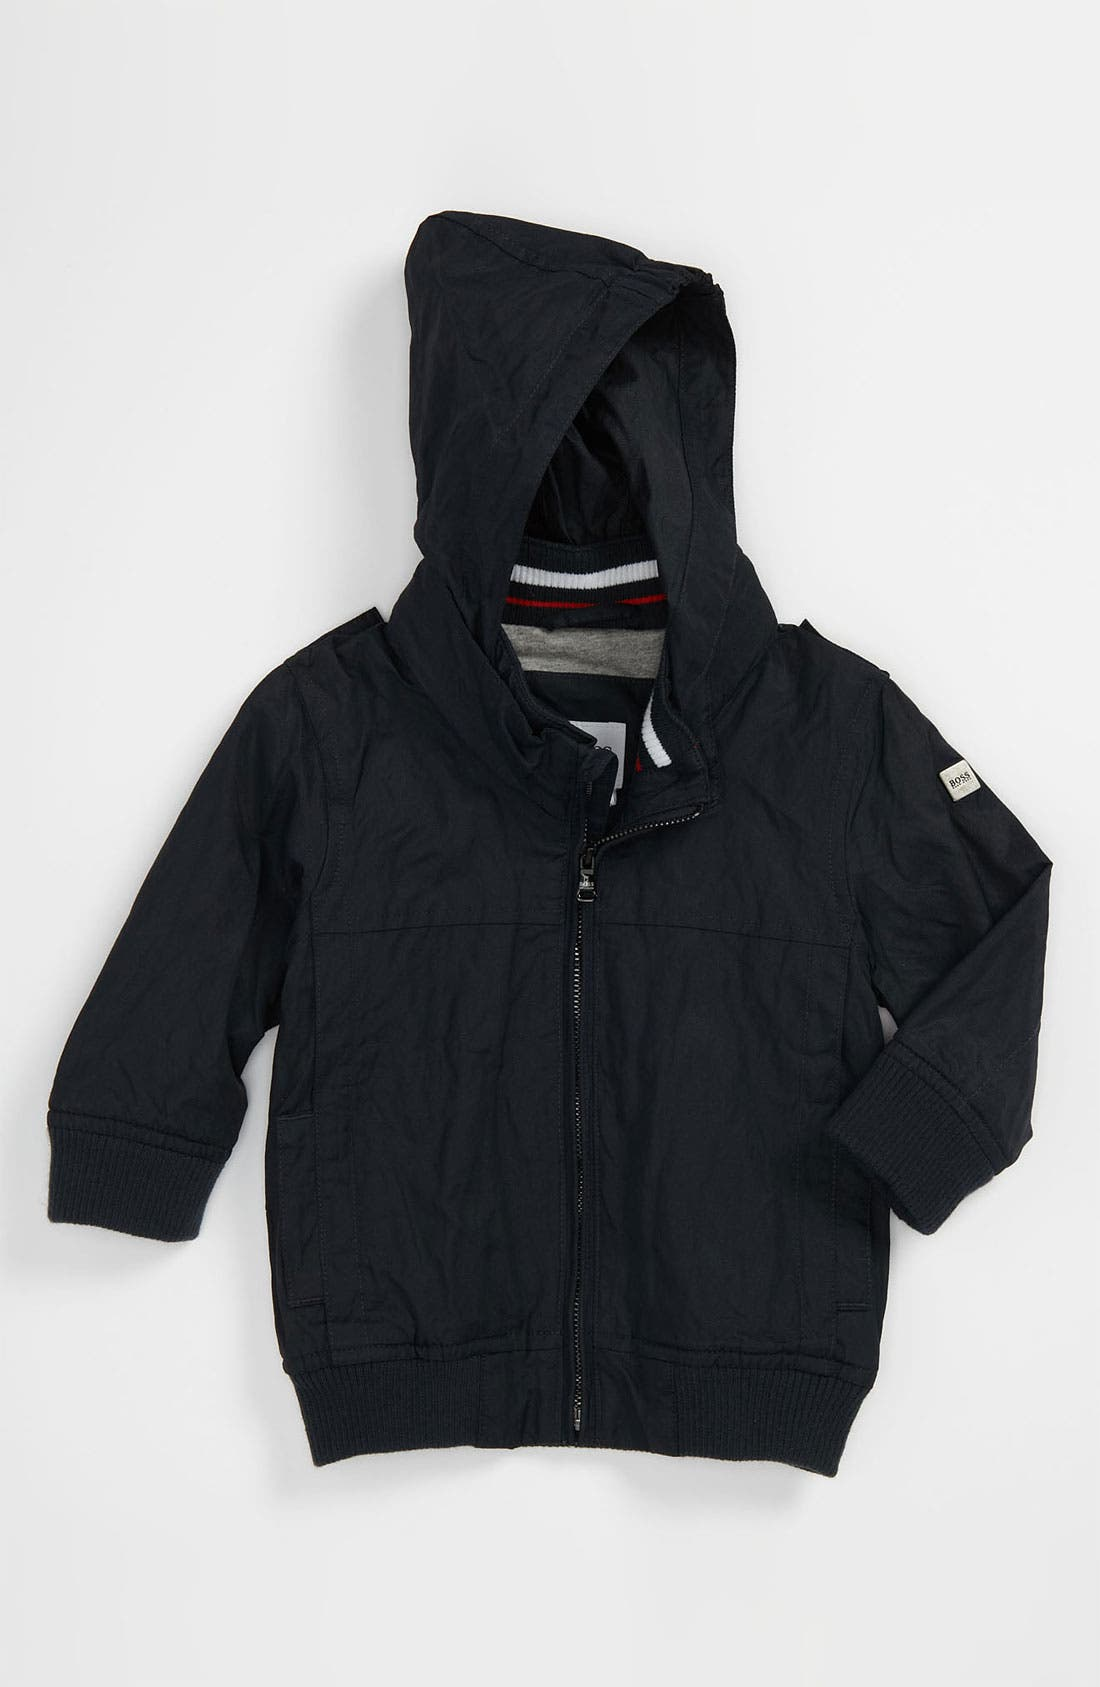 Alternate Image 1 Selected - BOSS Kidswear Twill Jacket (Baby)